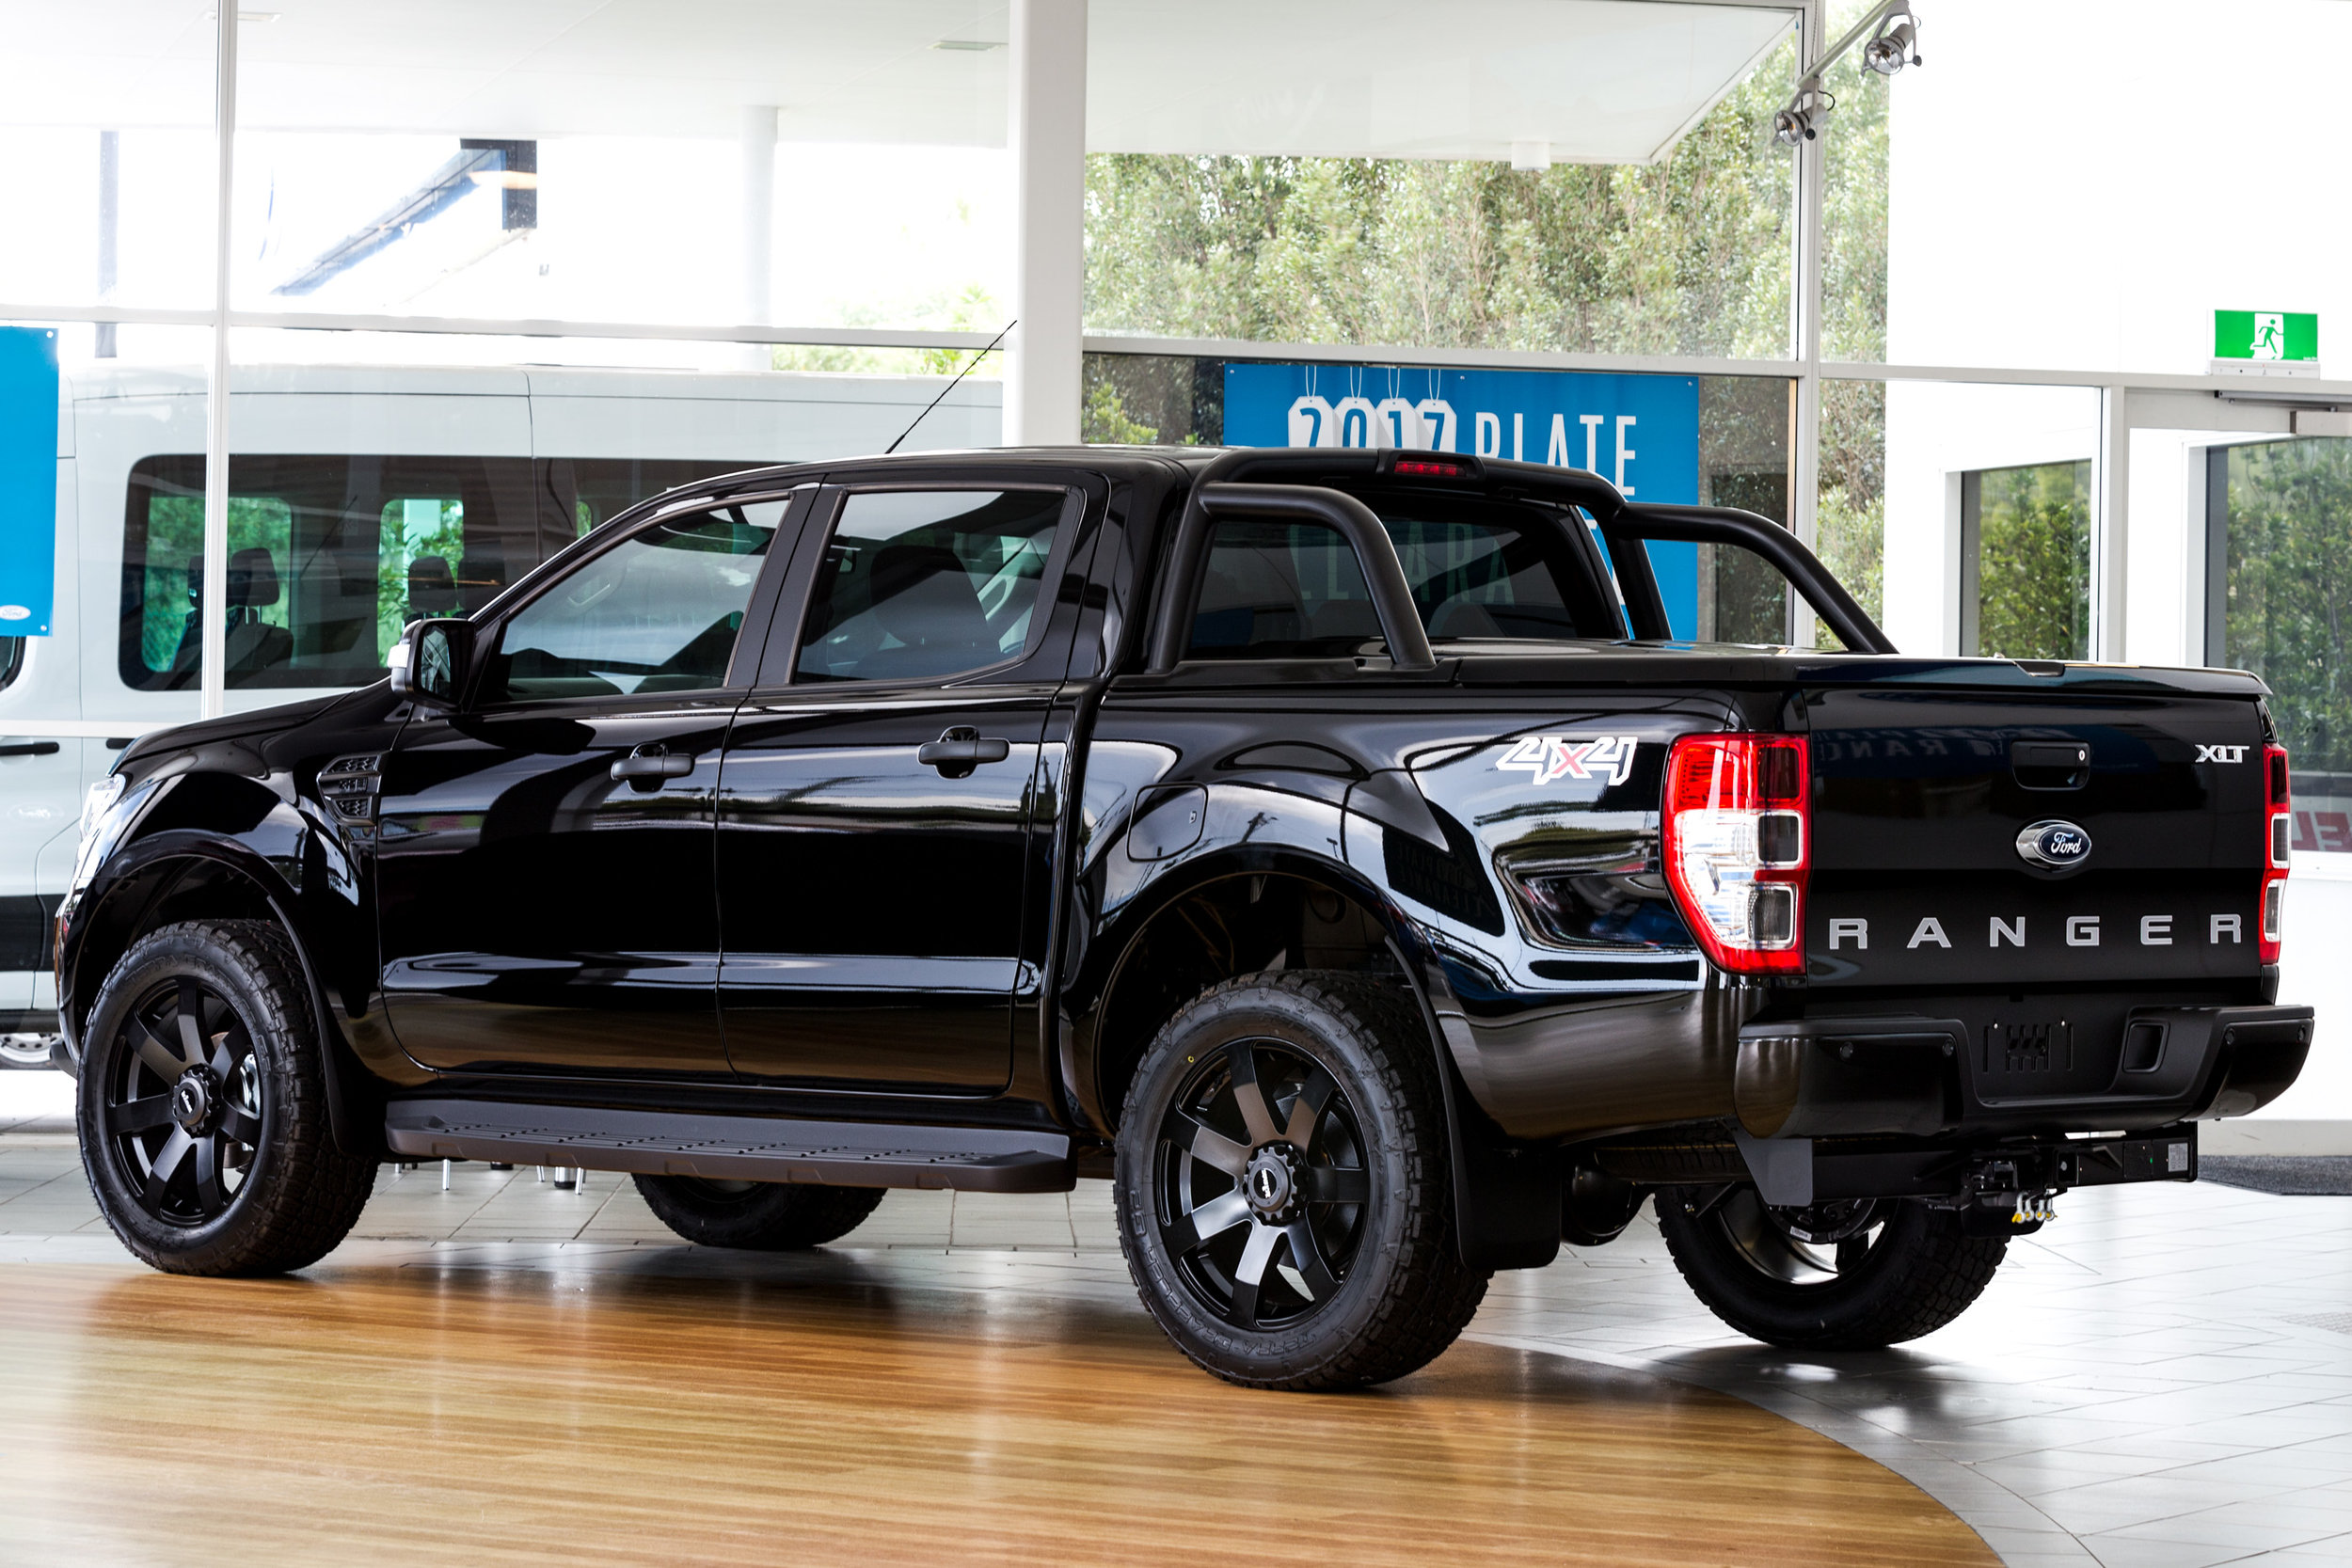 Ford Ranger (1 of 1)-2.jpg